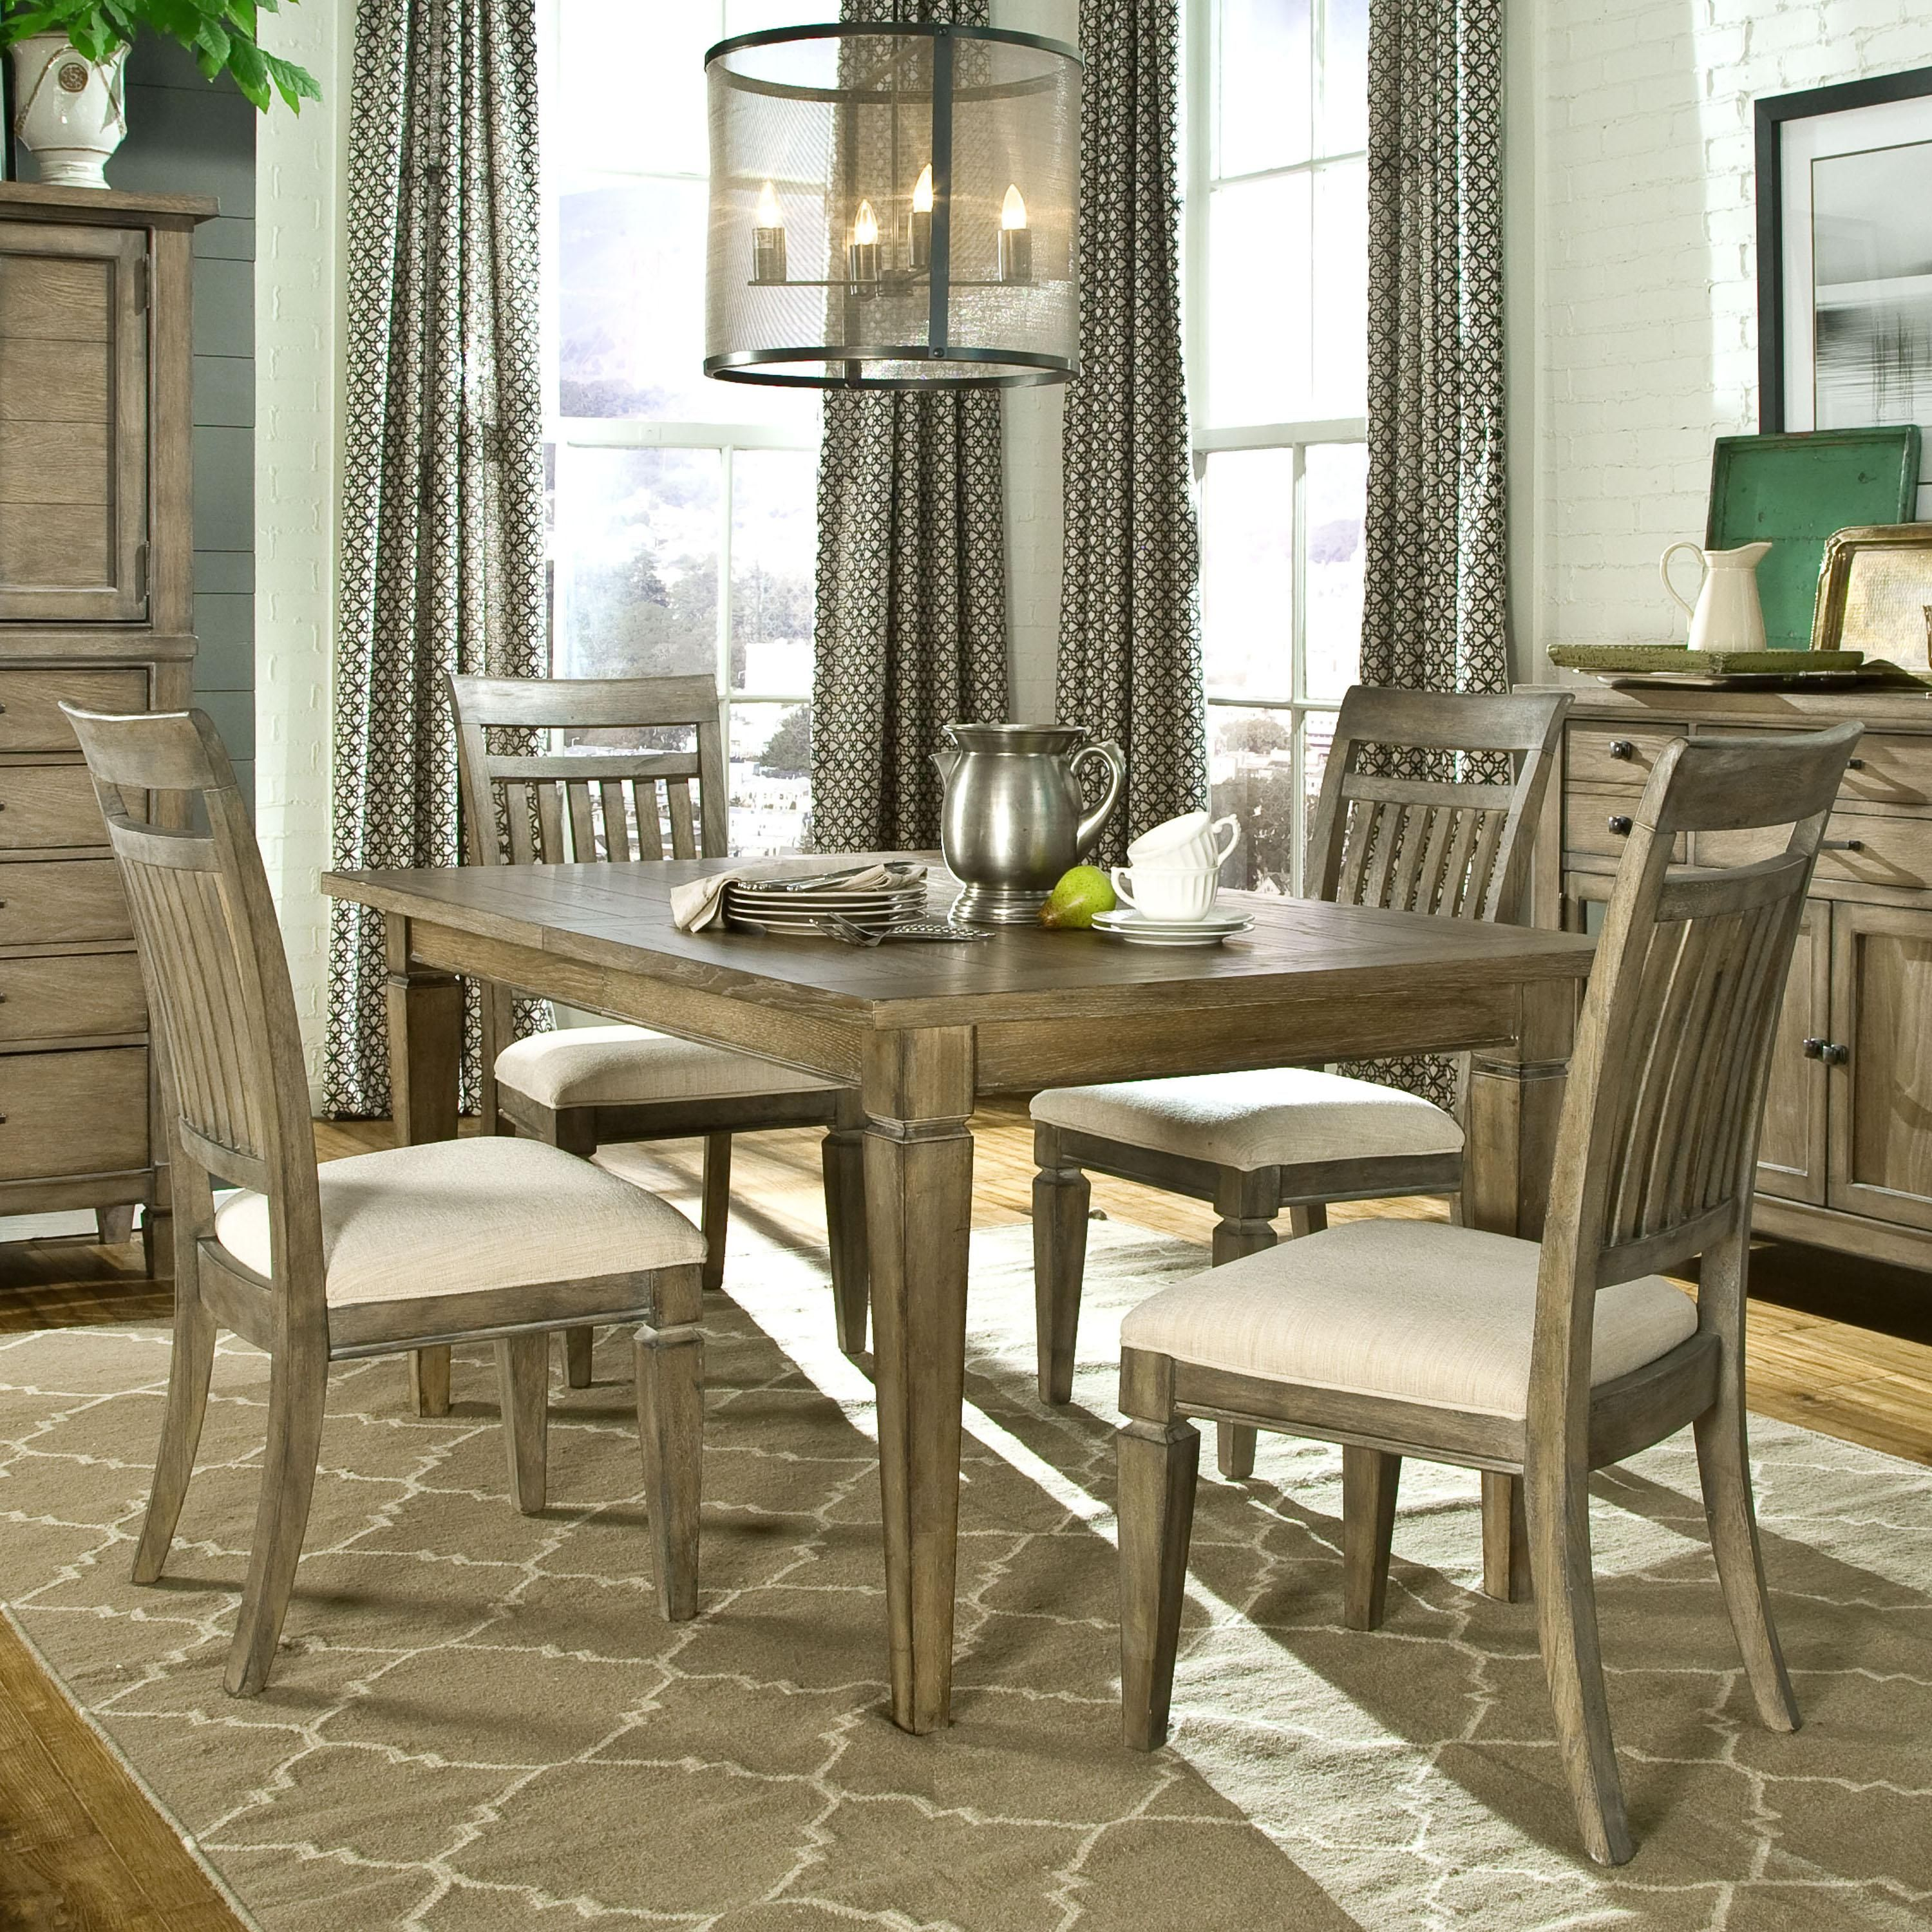 Brownstone Village 5 Piece Leg Table And Slat Back Chair Set By Legacy Classic Chic Dining Room Farmhouse Dining Table Casual Dining Rooms